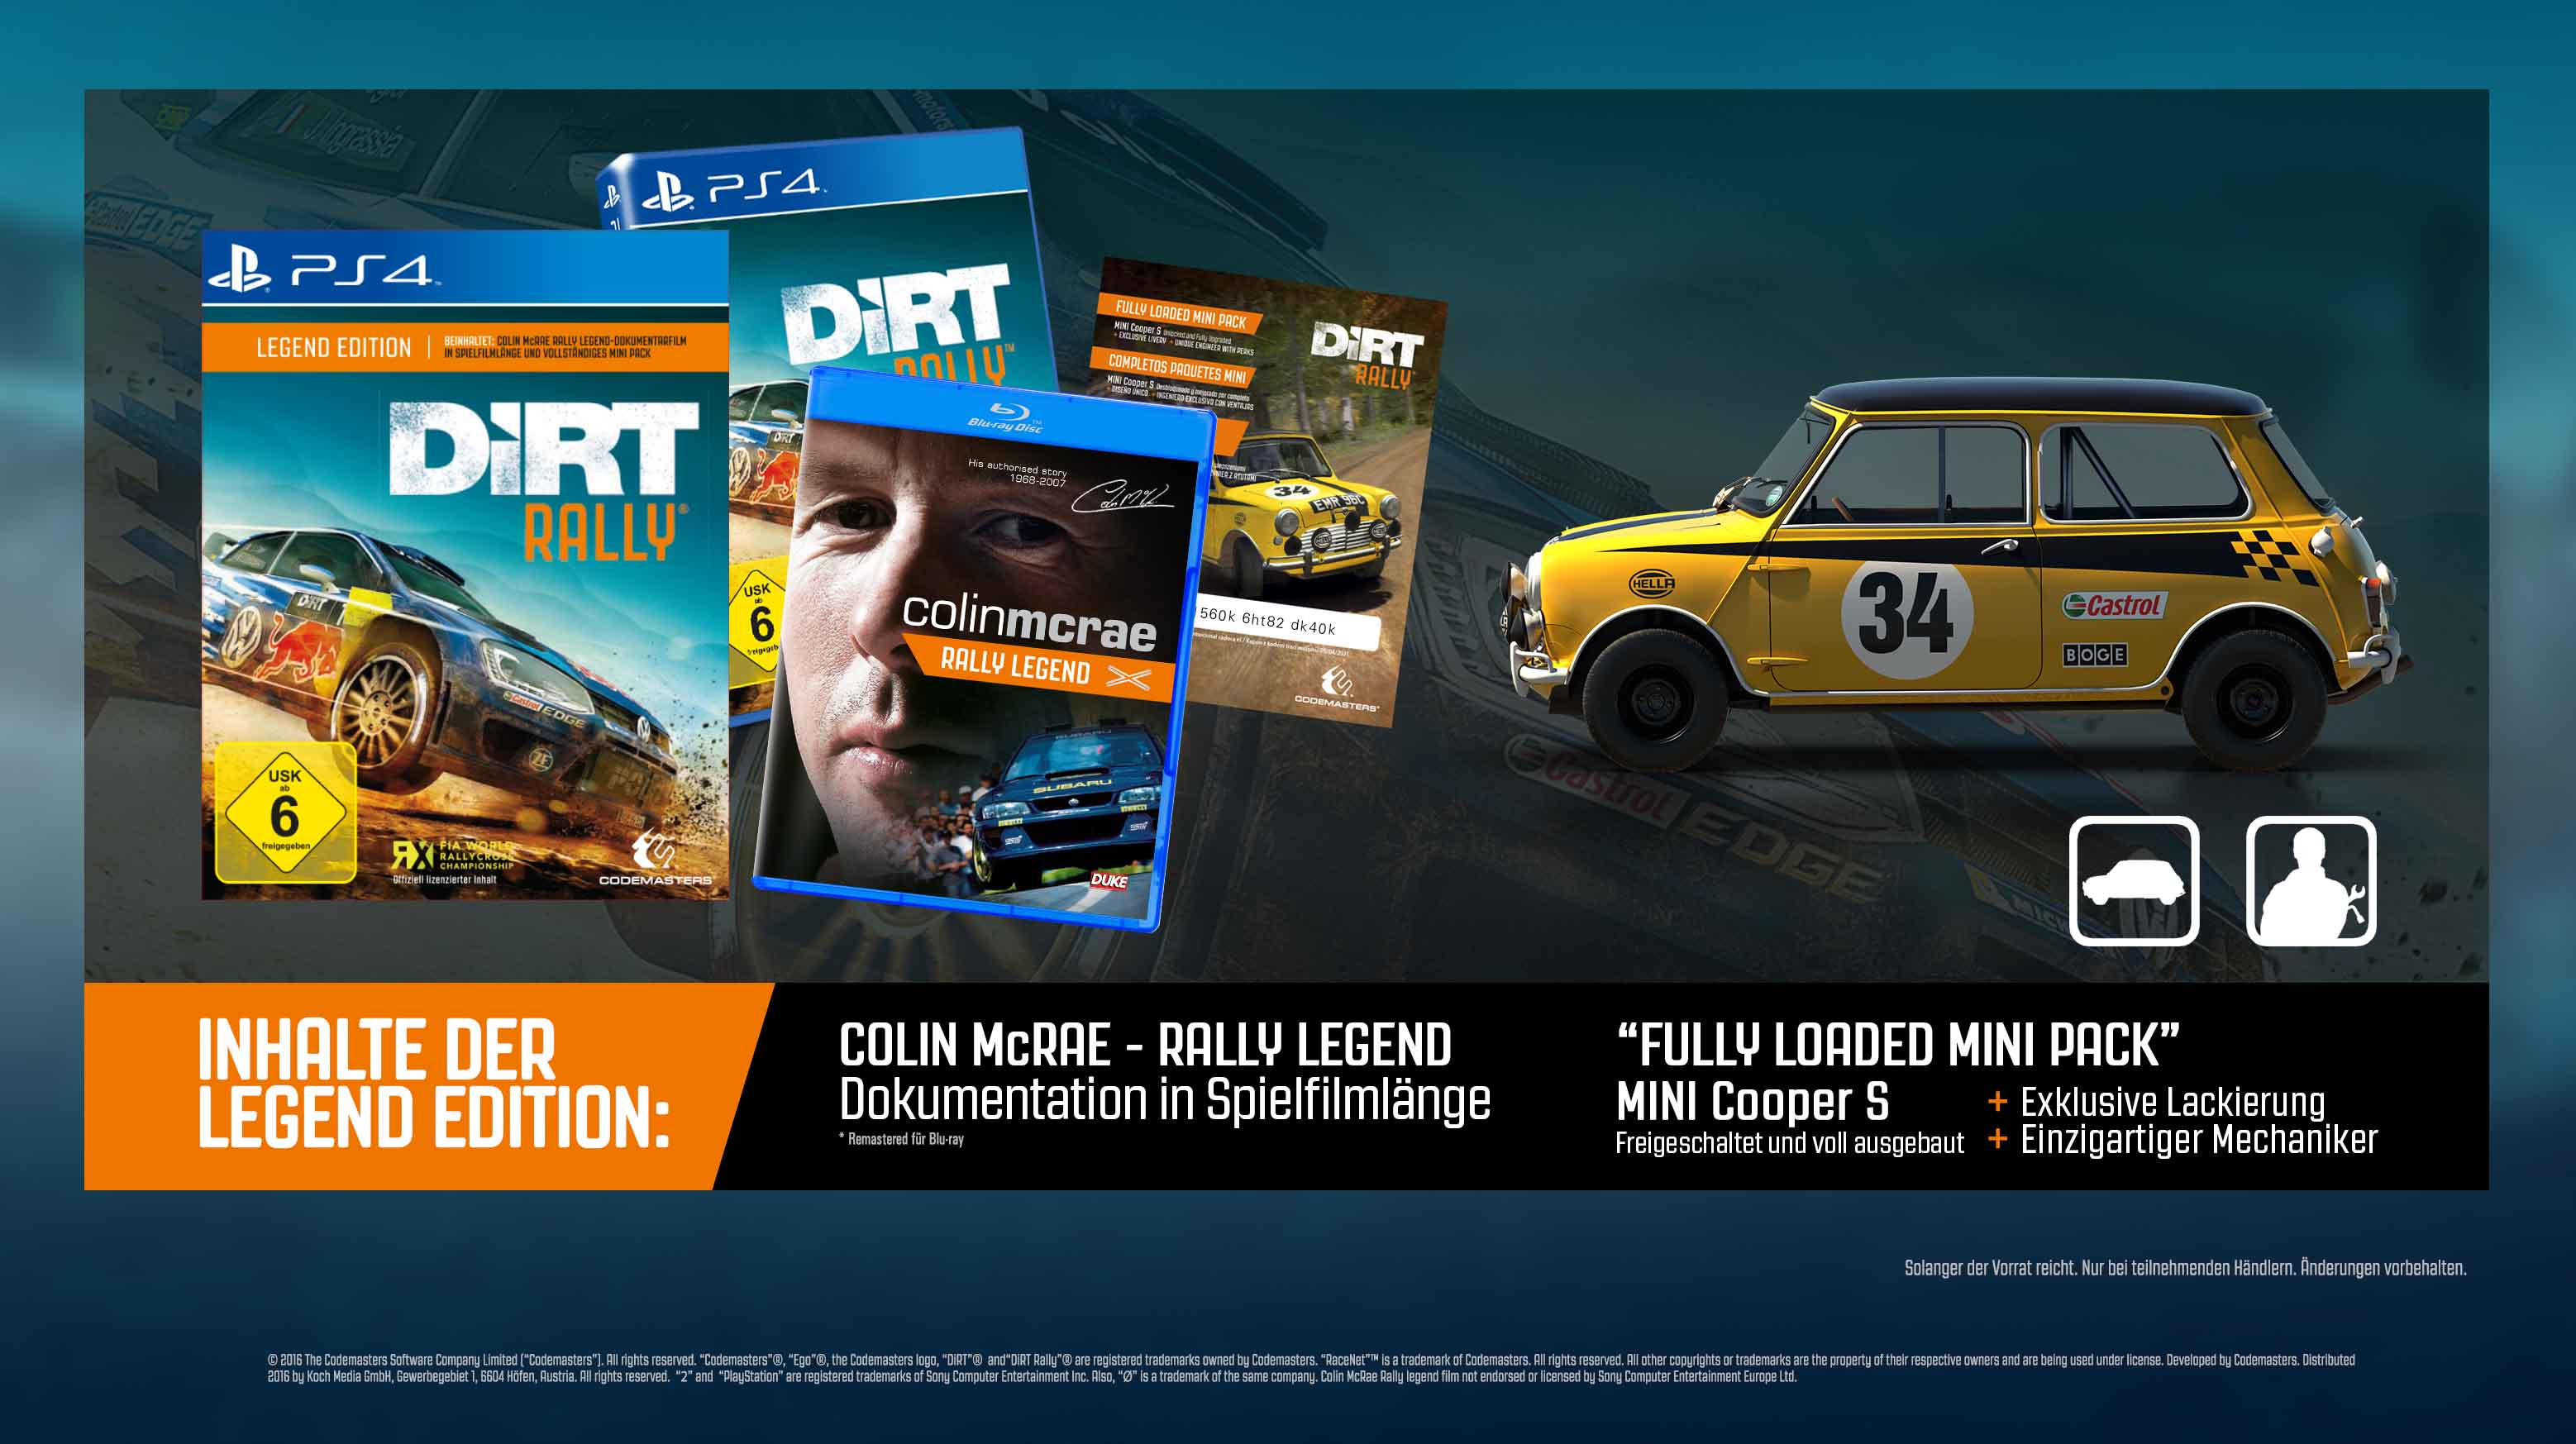 DiRT-RALLY-LEGEND-DE-USK-PS4-nat-games